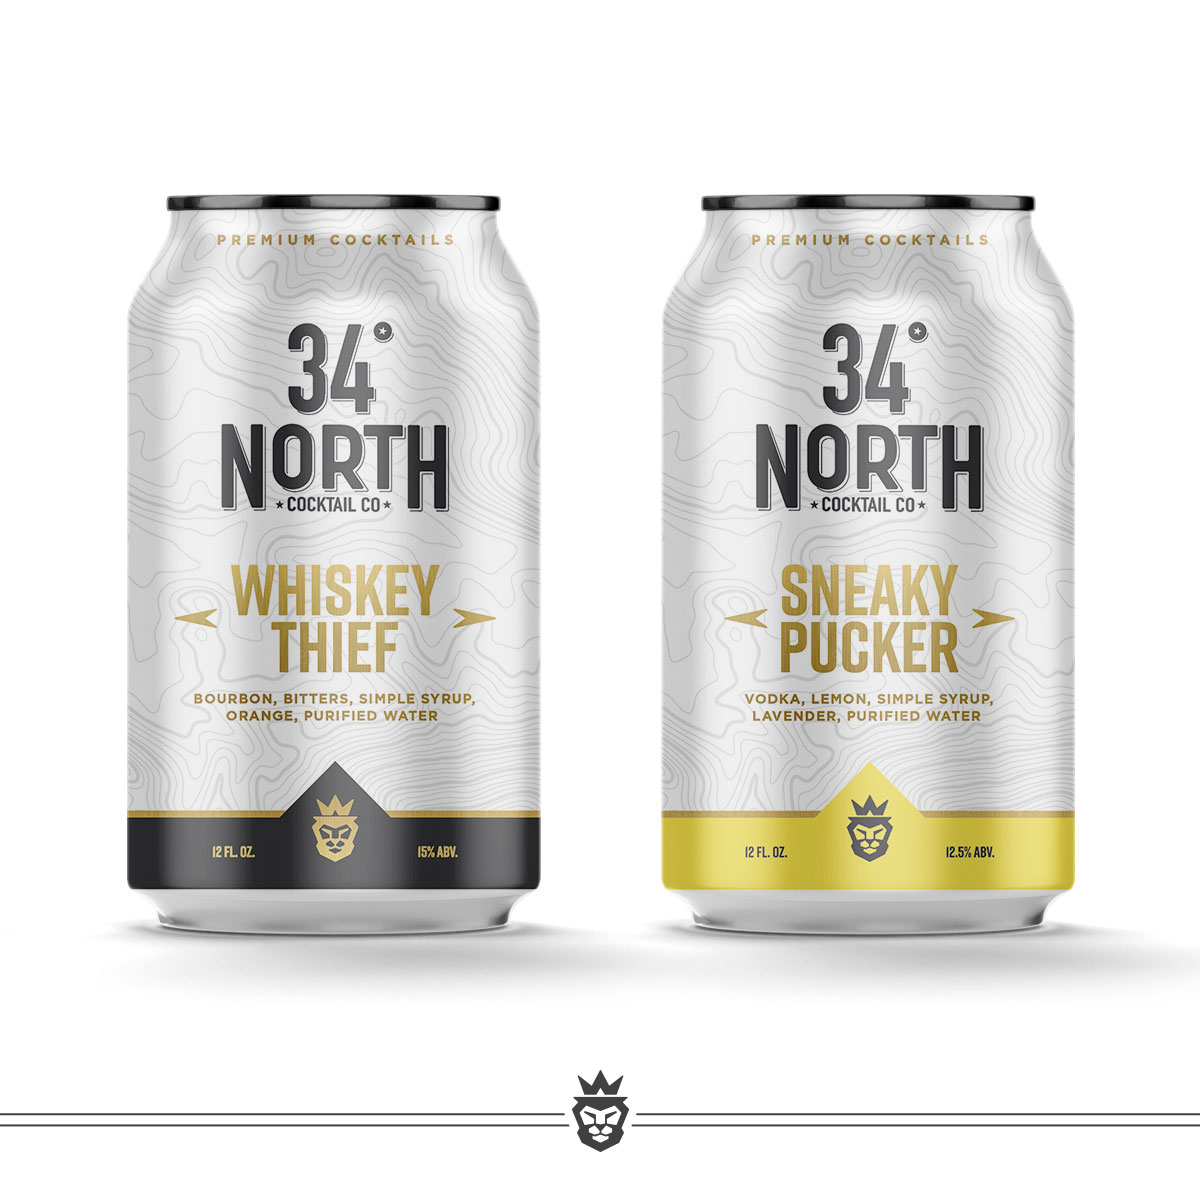 Mixology In A Can. - Available Now!Check with your local retail liquor store for availability. If your store does not have them, ask them to request with their distributor!#Summerof34